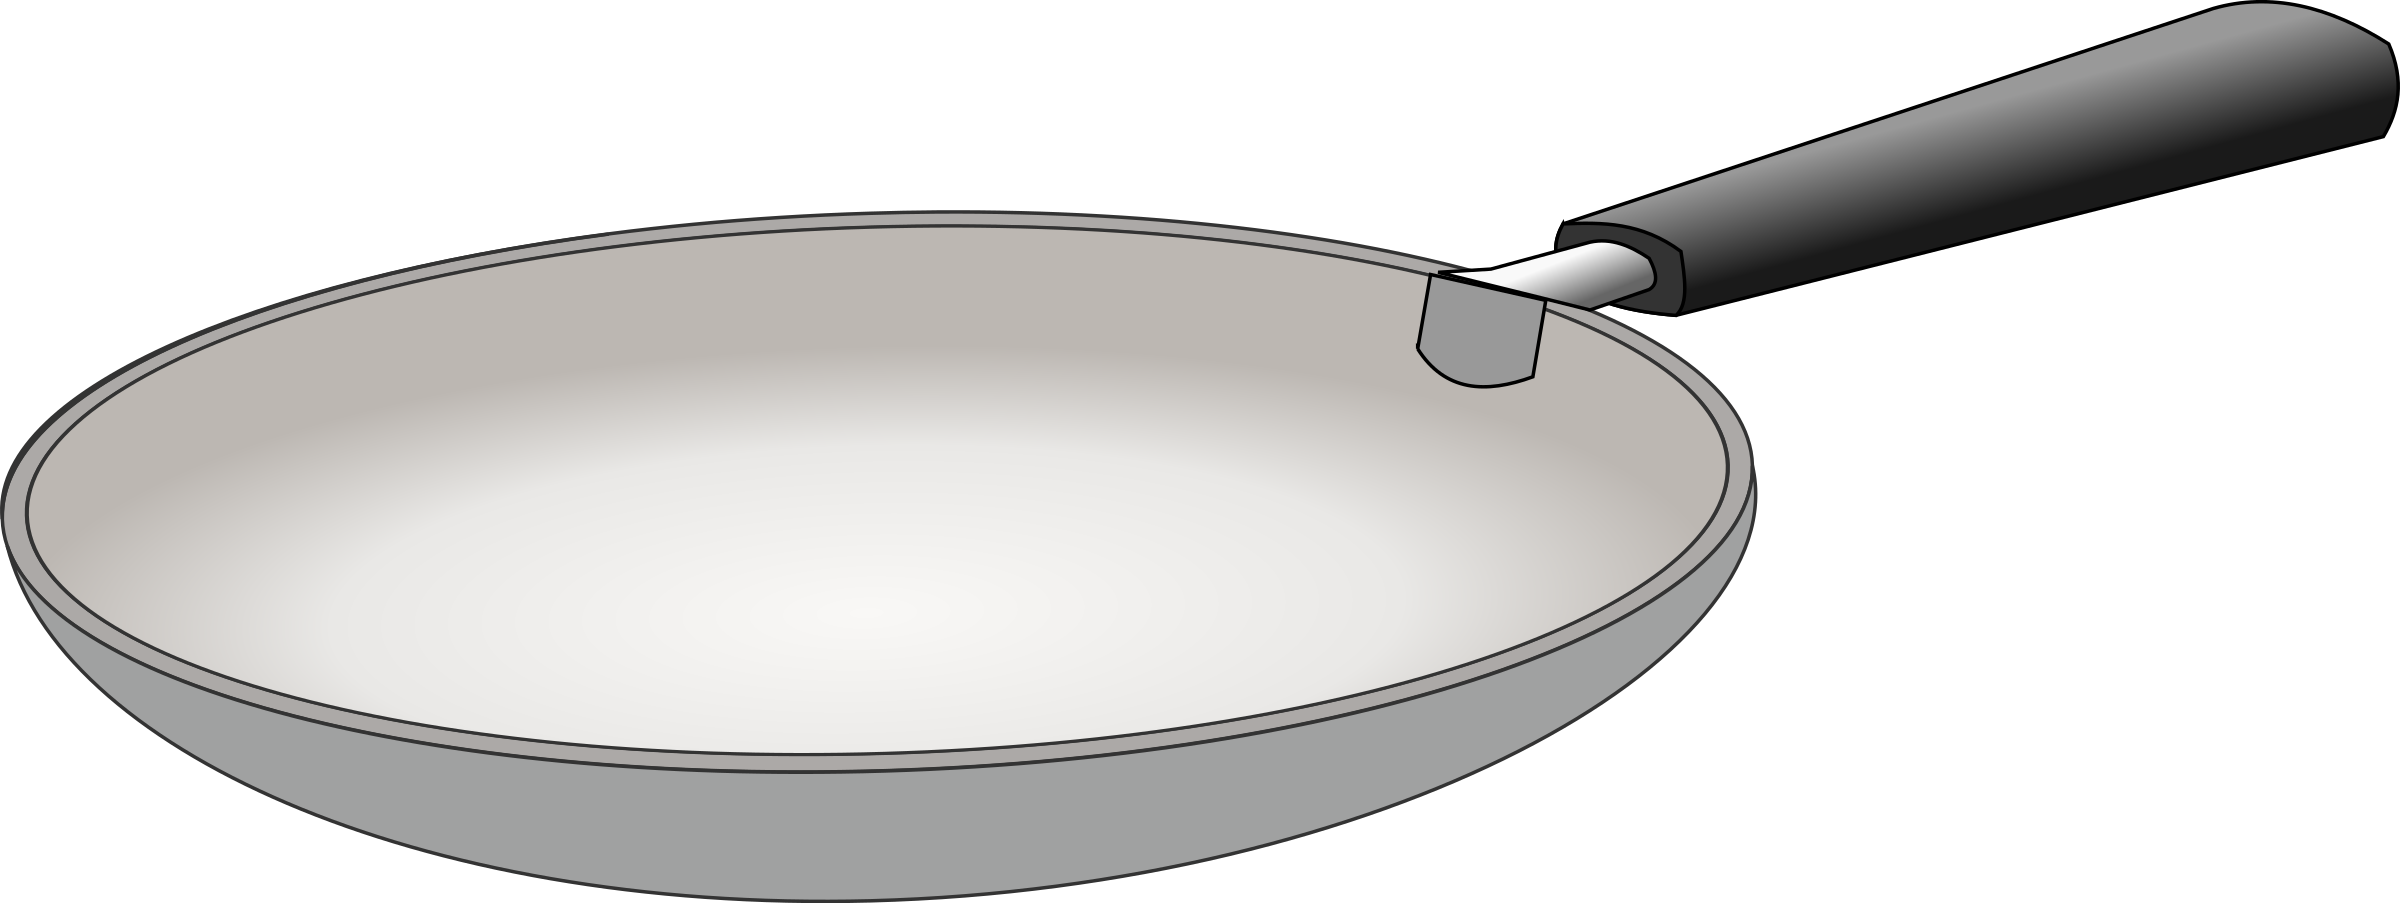 Clipart padella frying pan for Art cuisine cookware